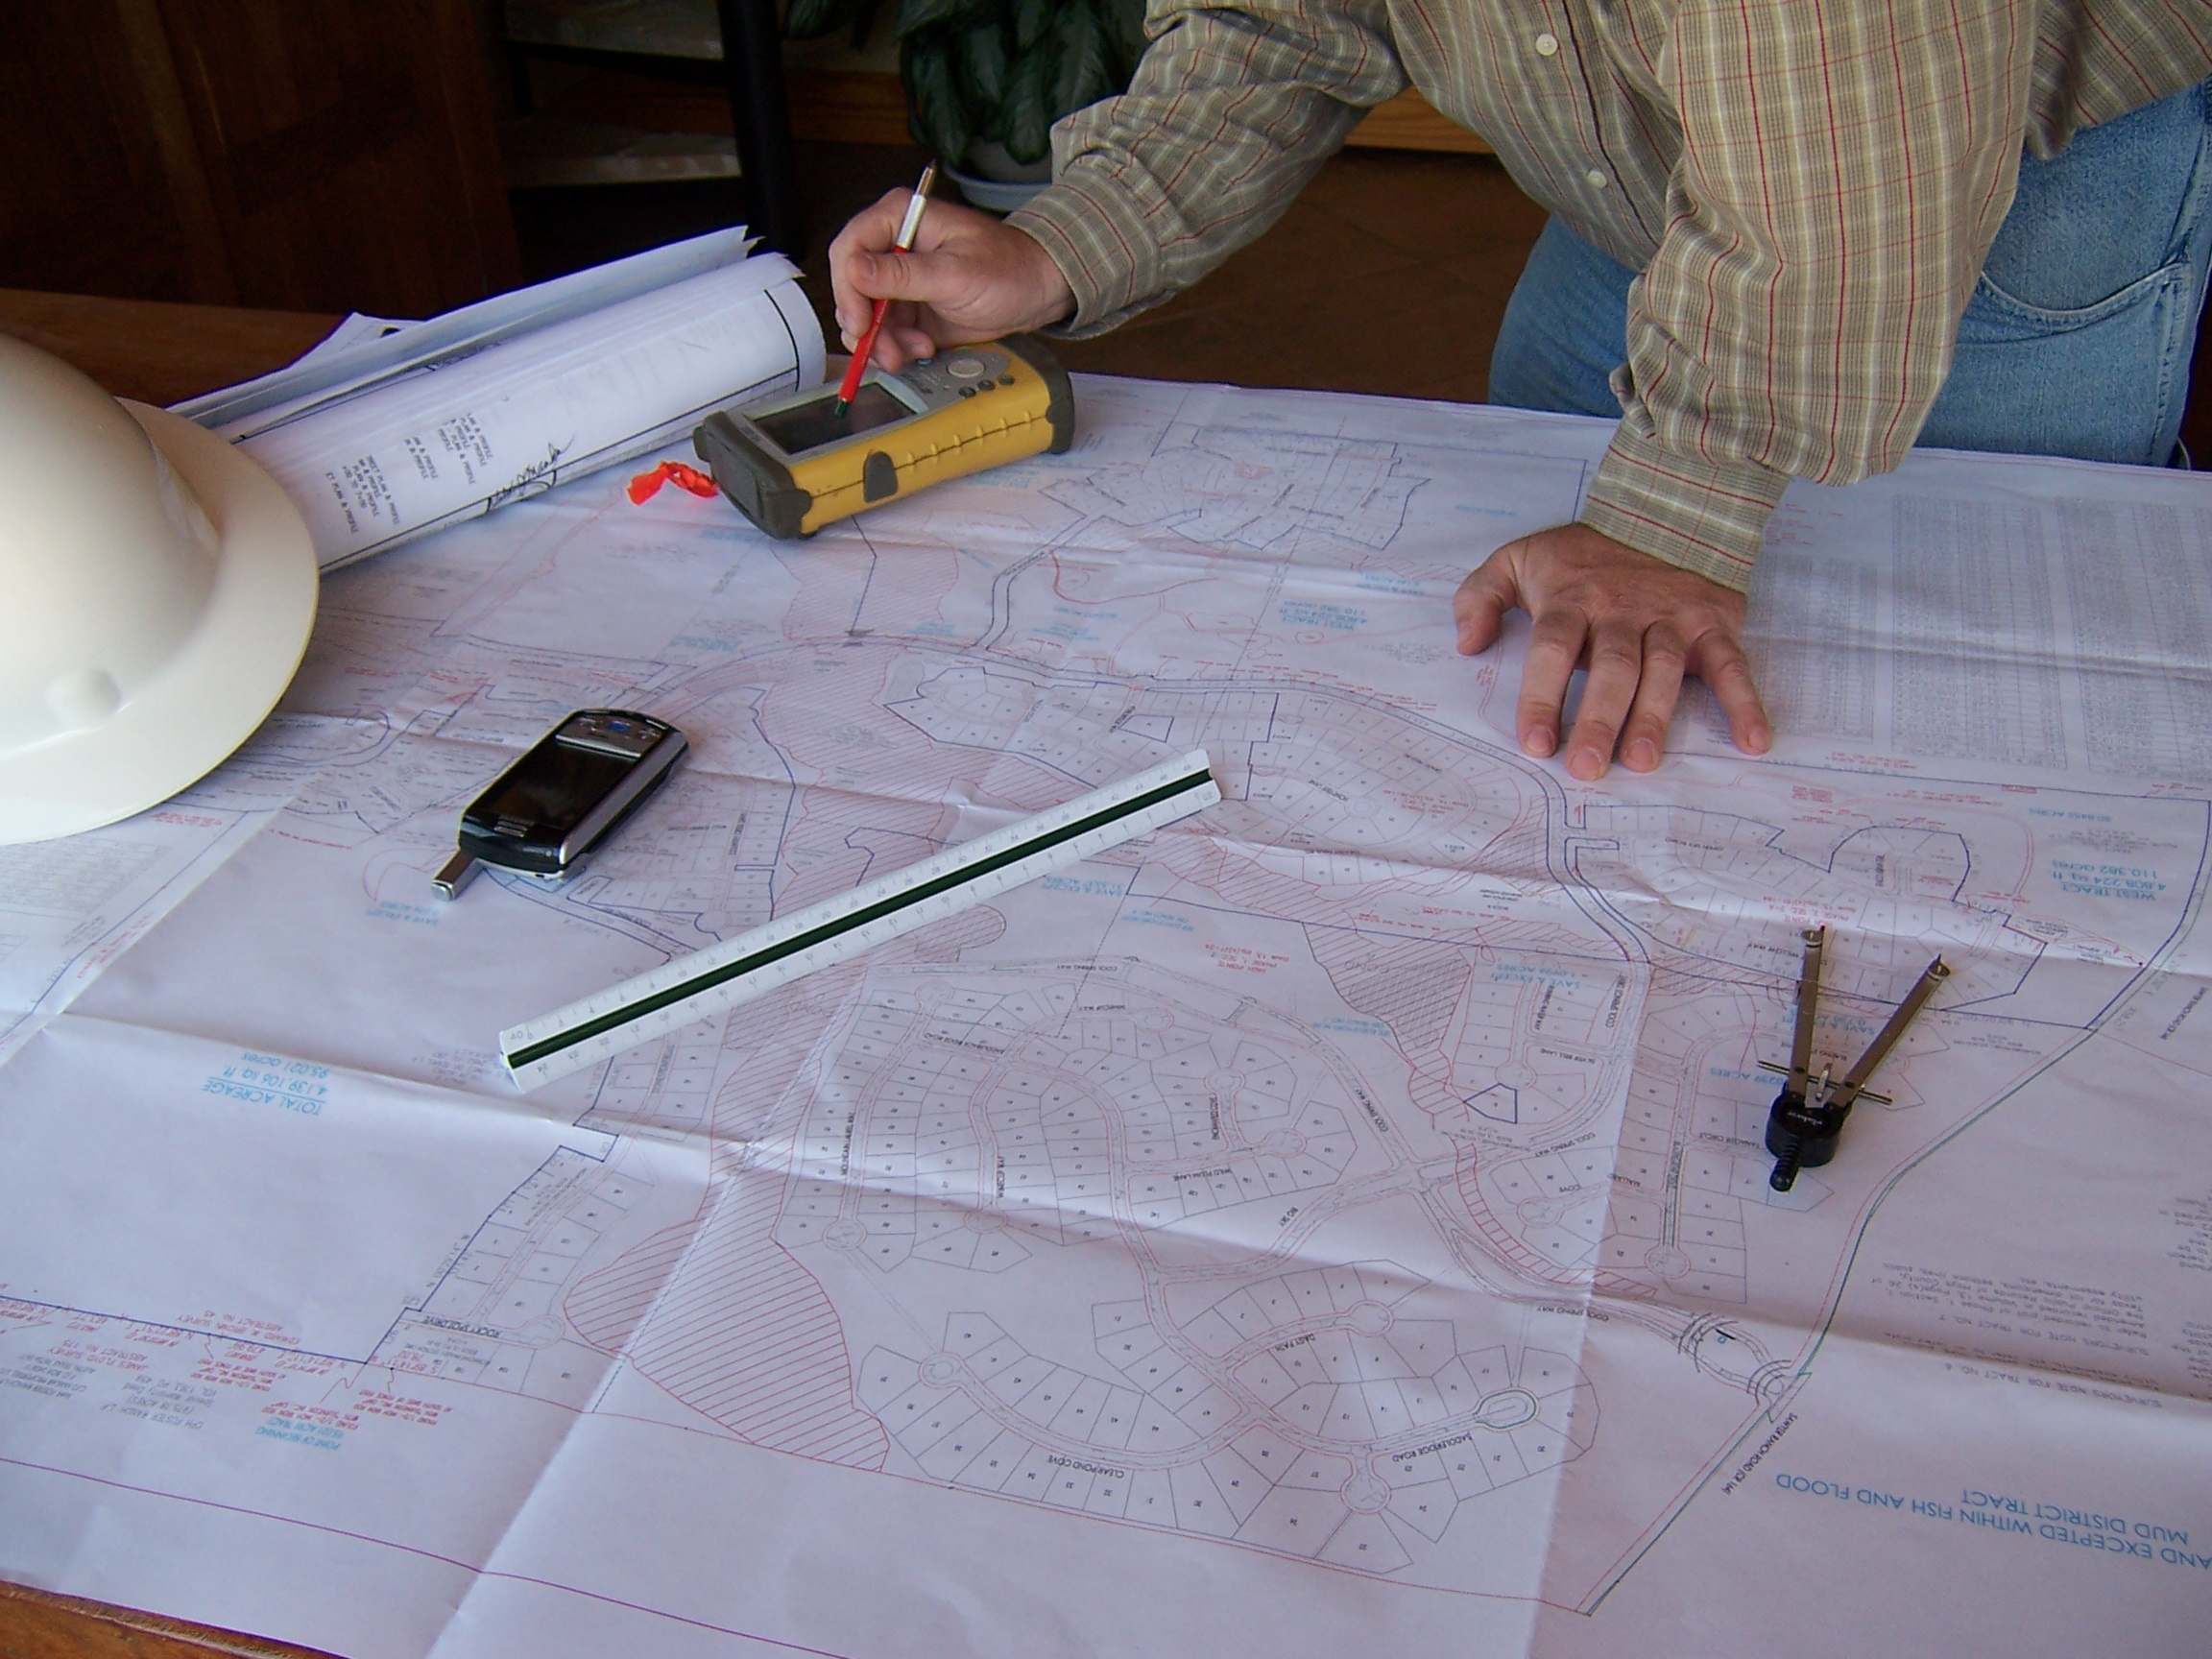 Engineer with blueprints and tools